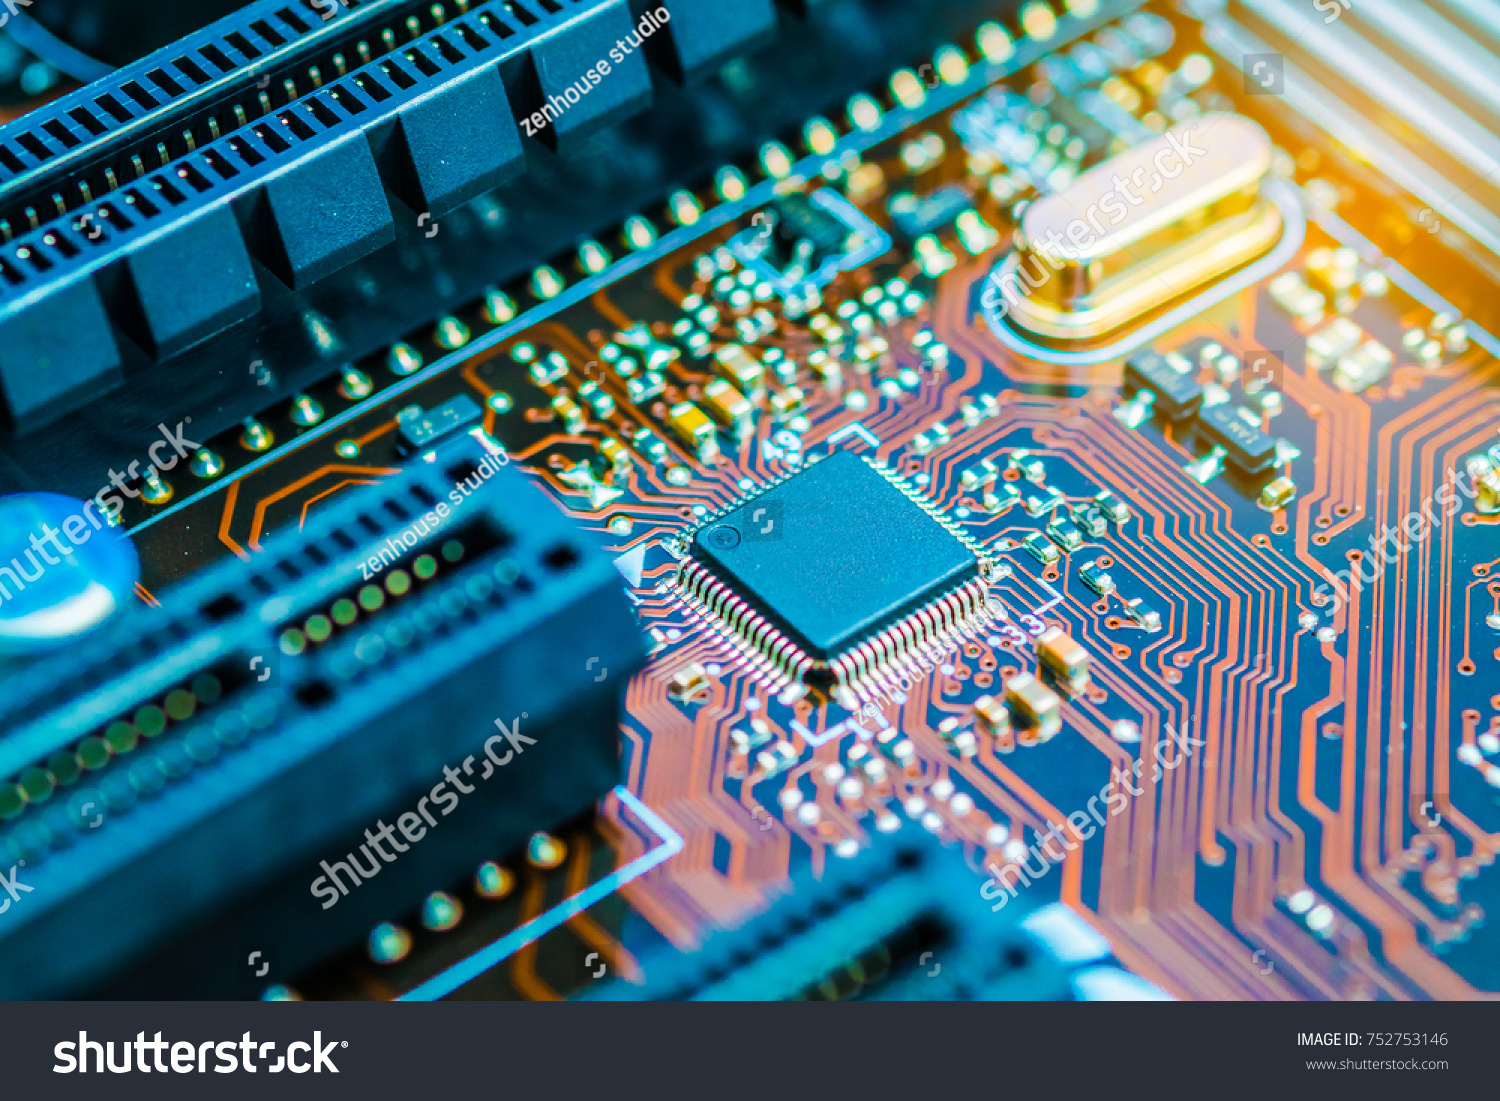 Cpu Chipset On Printed Circuit Board Pcb Close Up Ez Canvas Custom Electronic Made Id 752753146